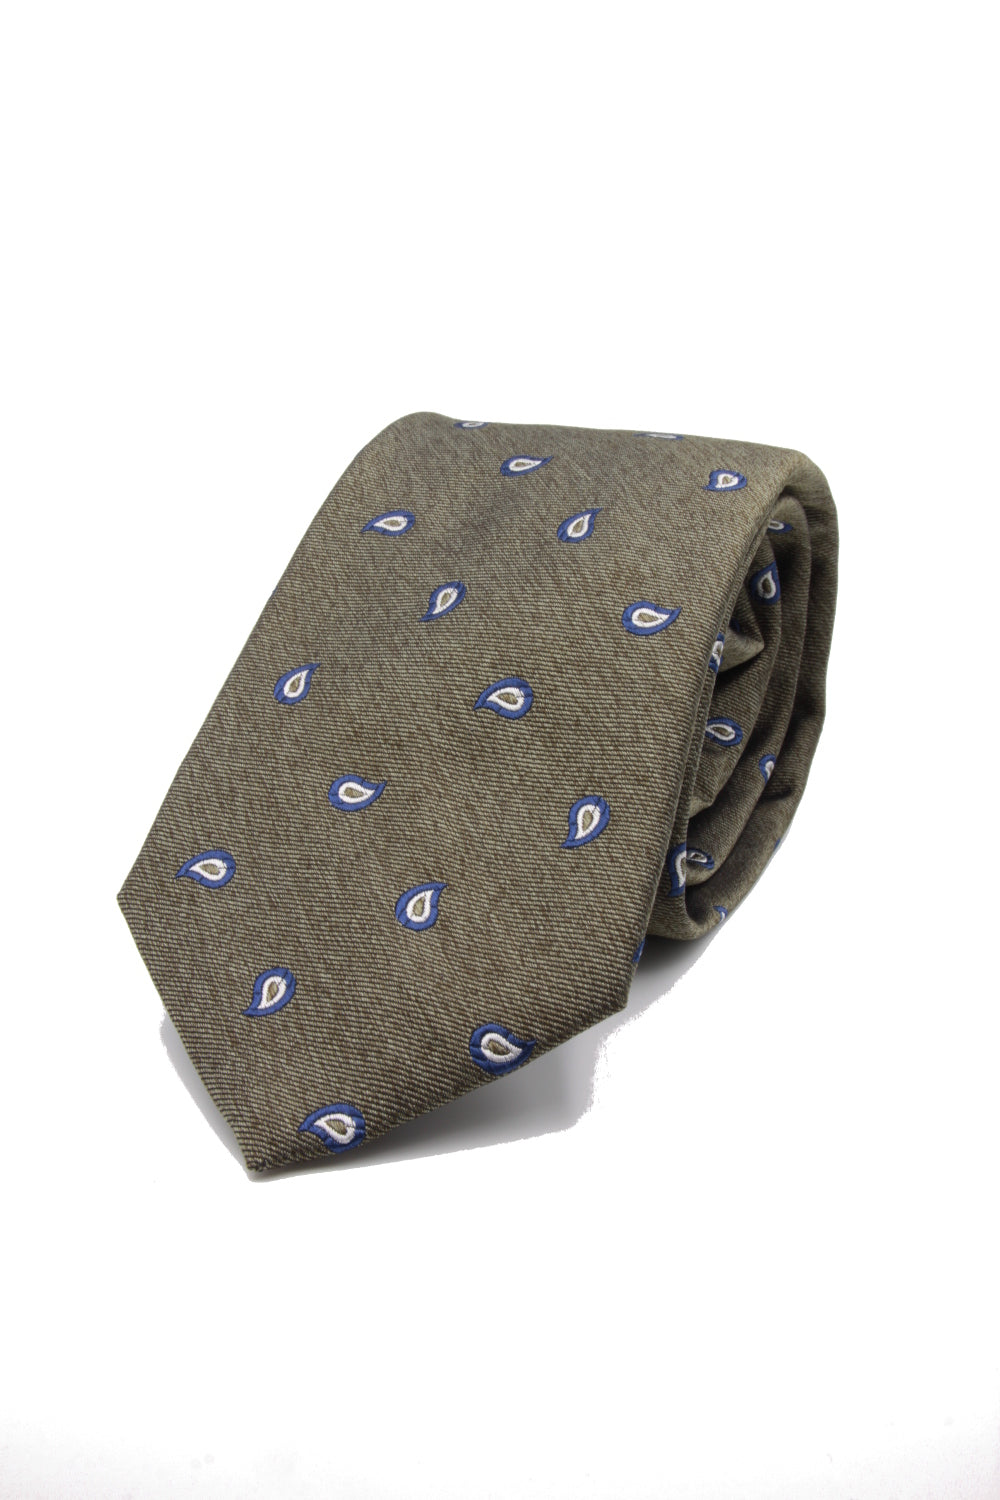 Olive green, blue and white paisley tie